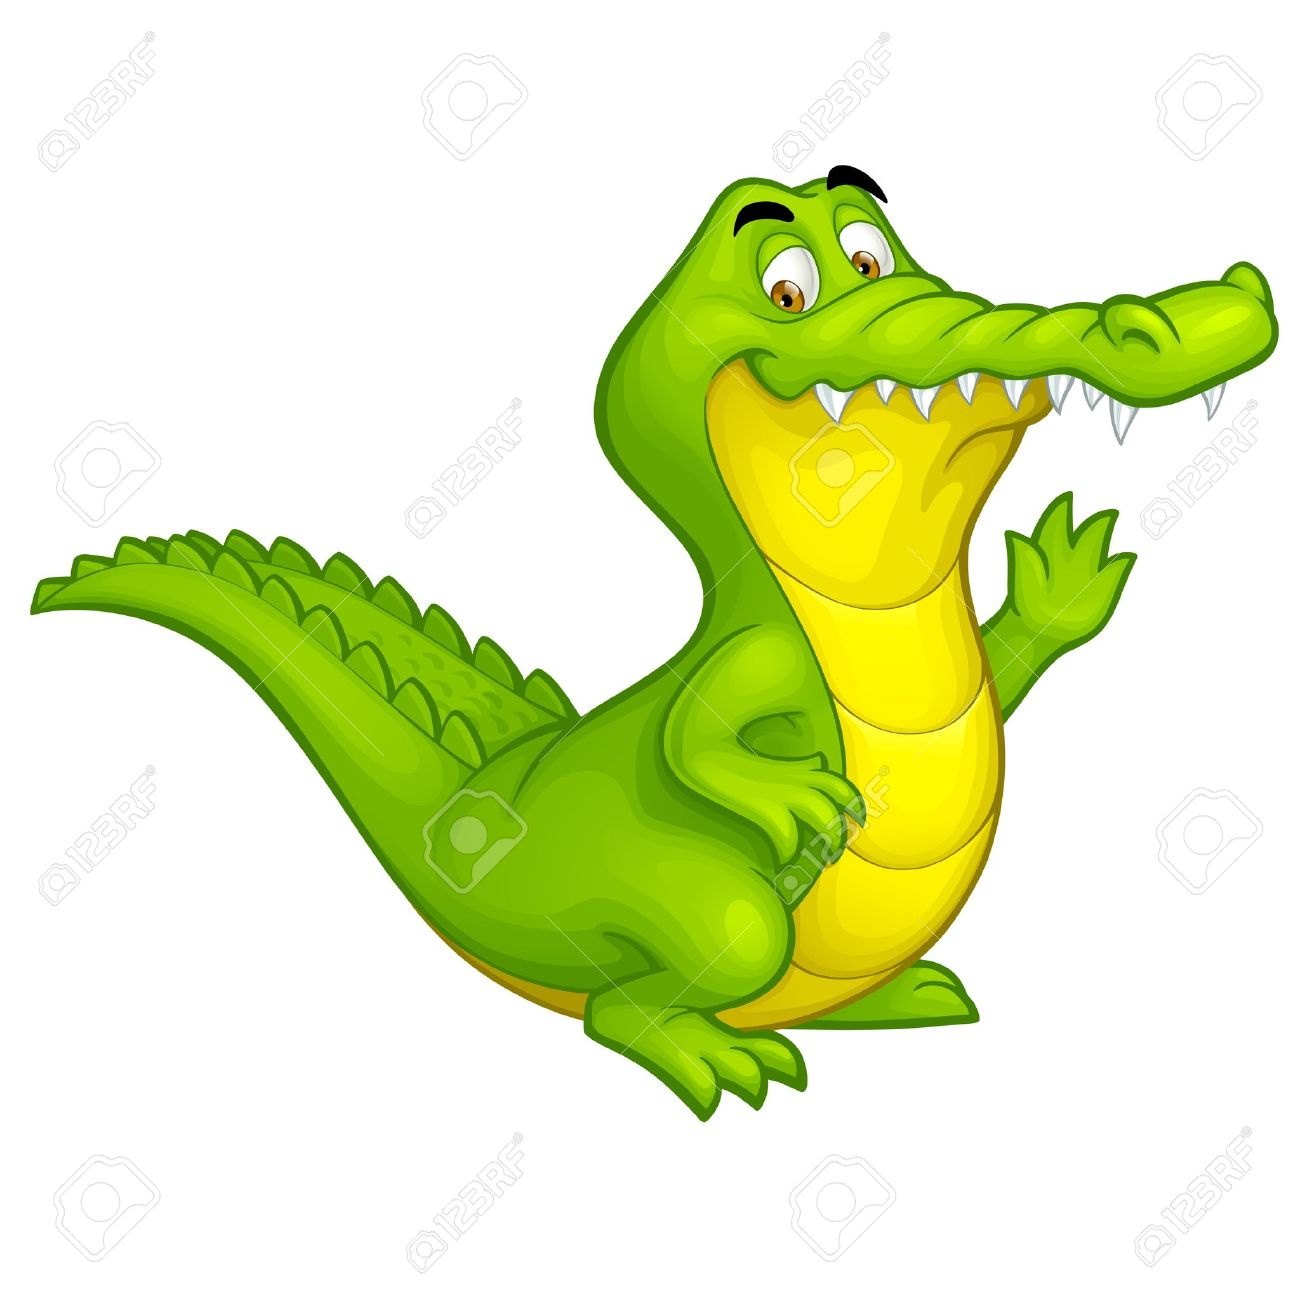 11,039 Alligator Cliparts, Stock Vector And Royalty Free Alligator ...